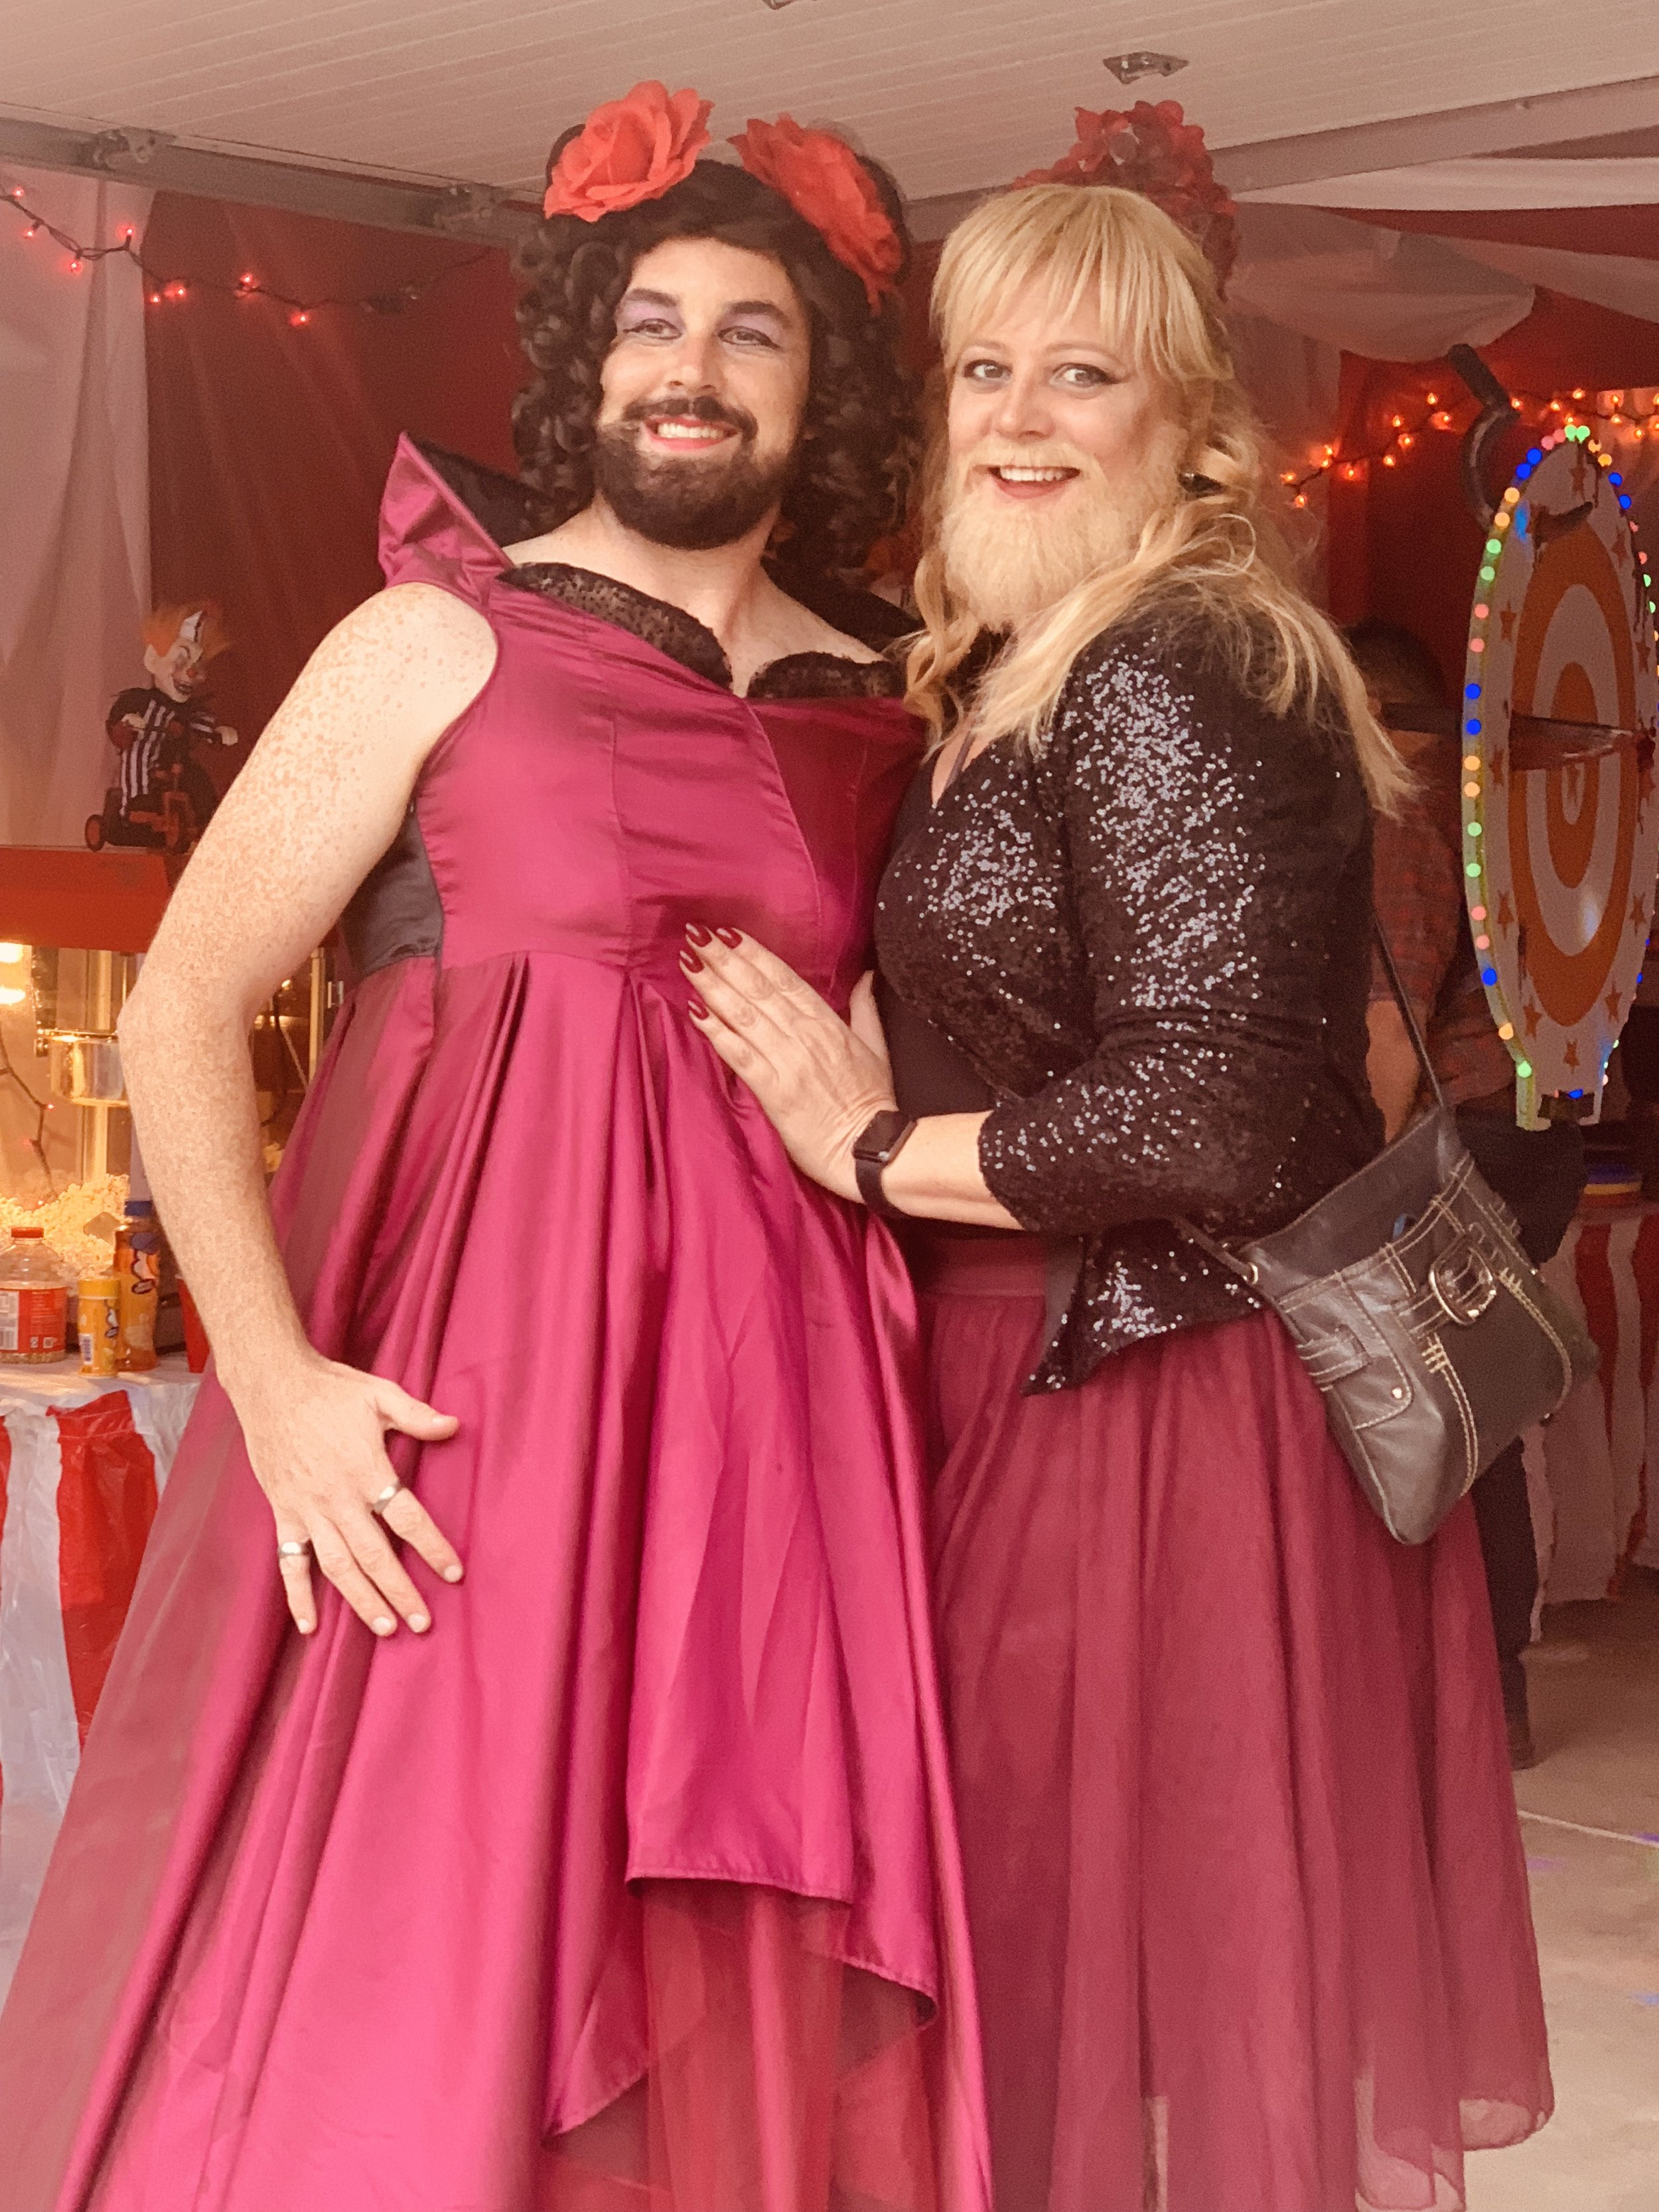 Just a couple bearded ladies here…